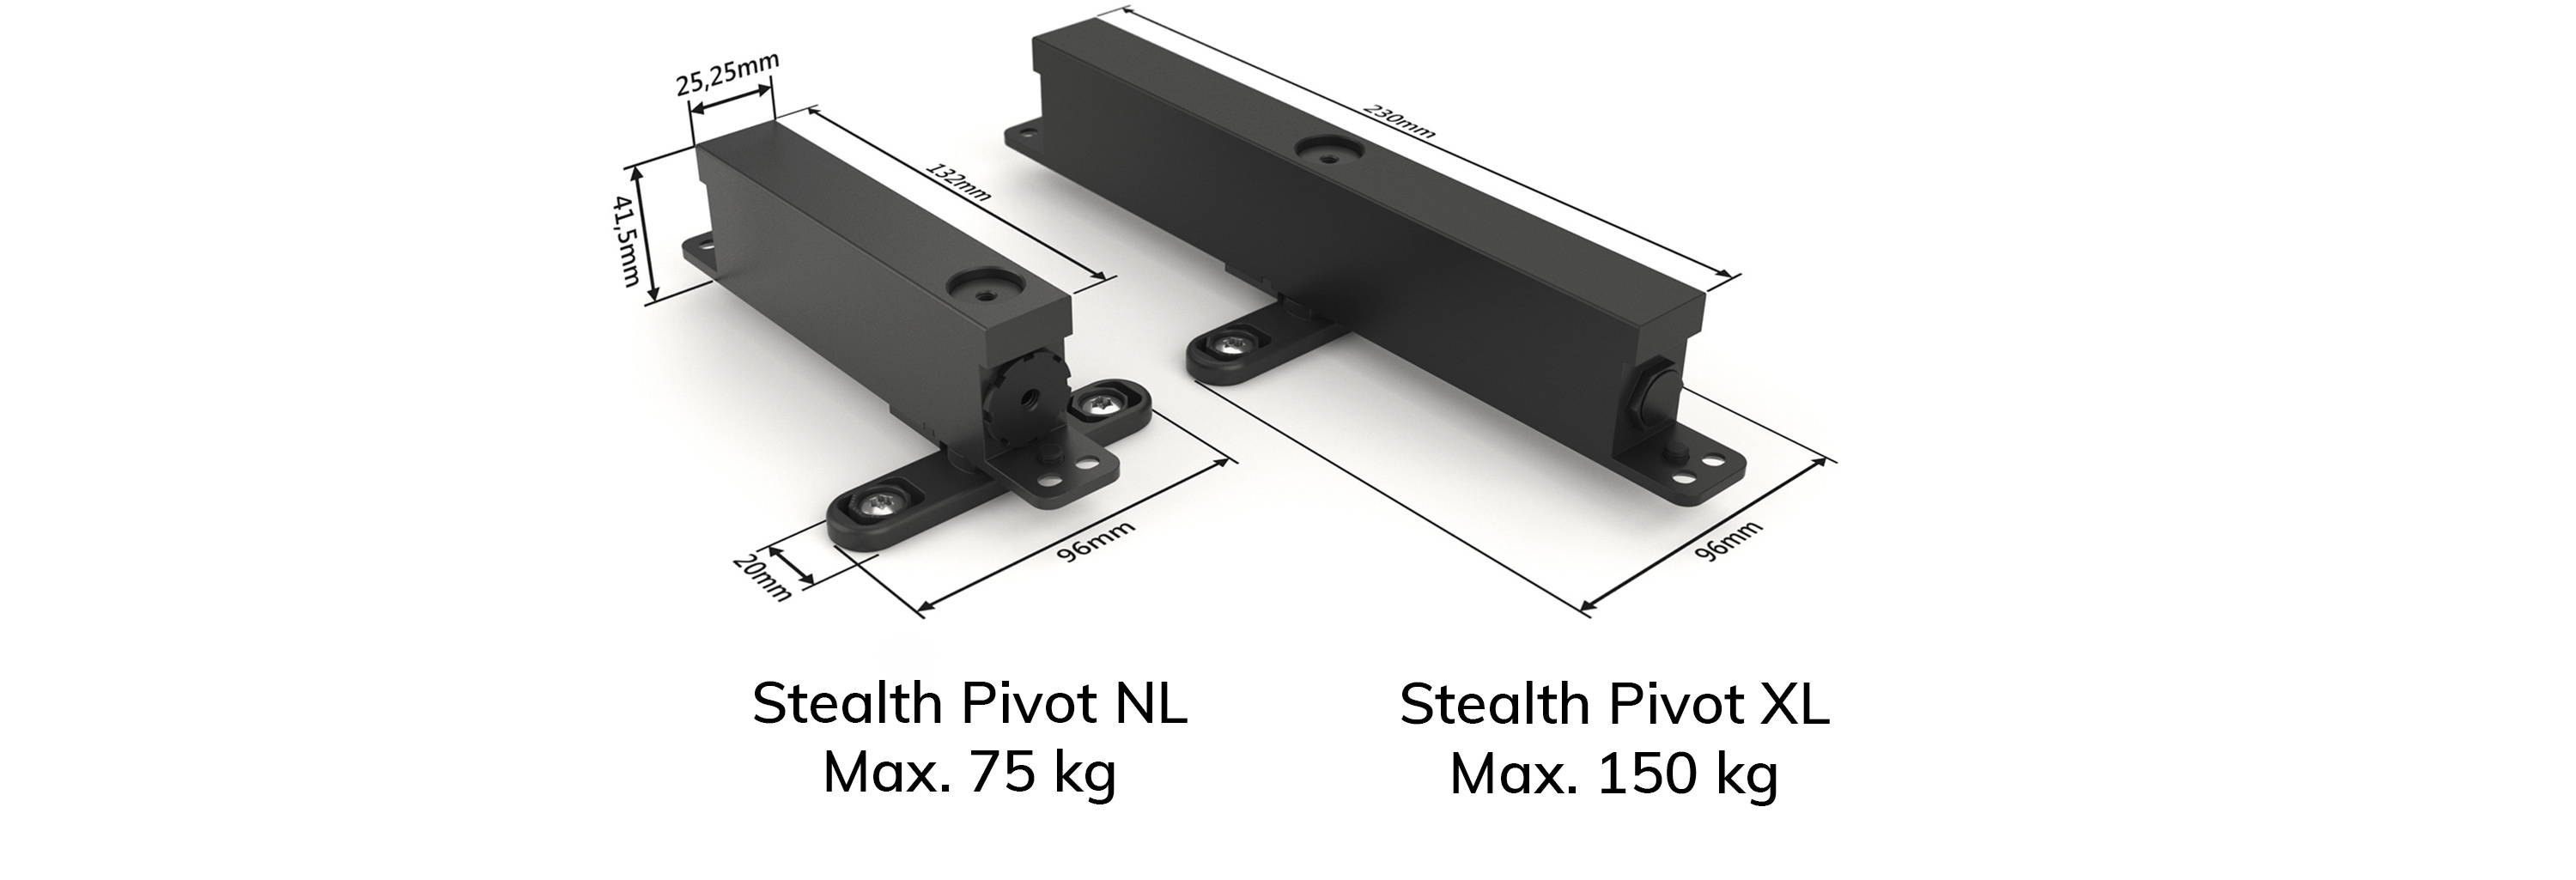 Self-closing pivot hinge systems